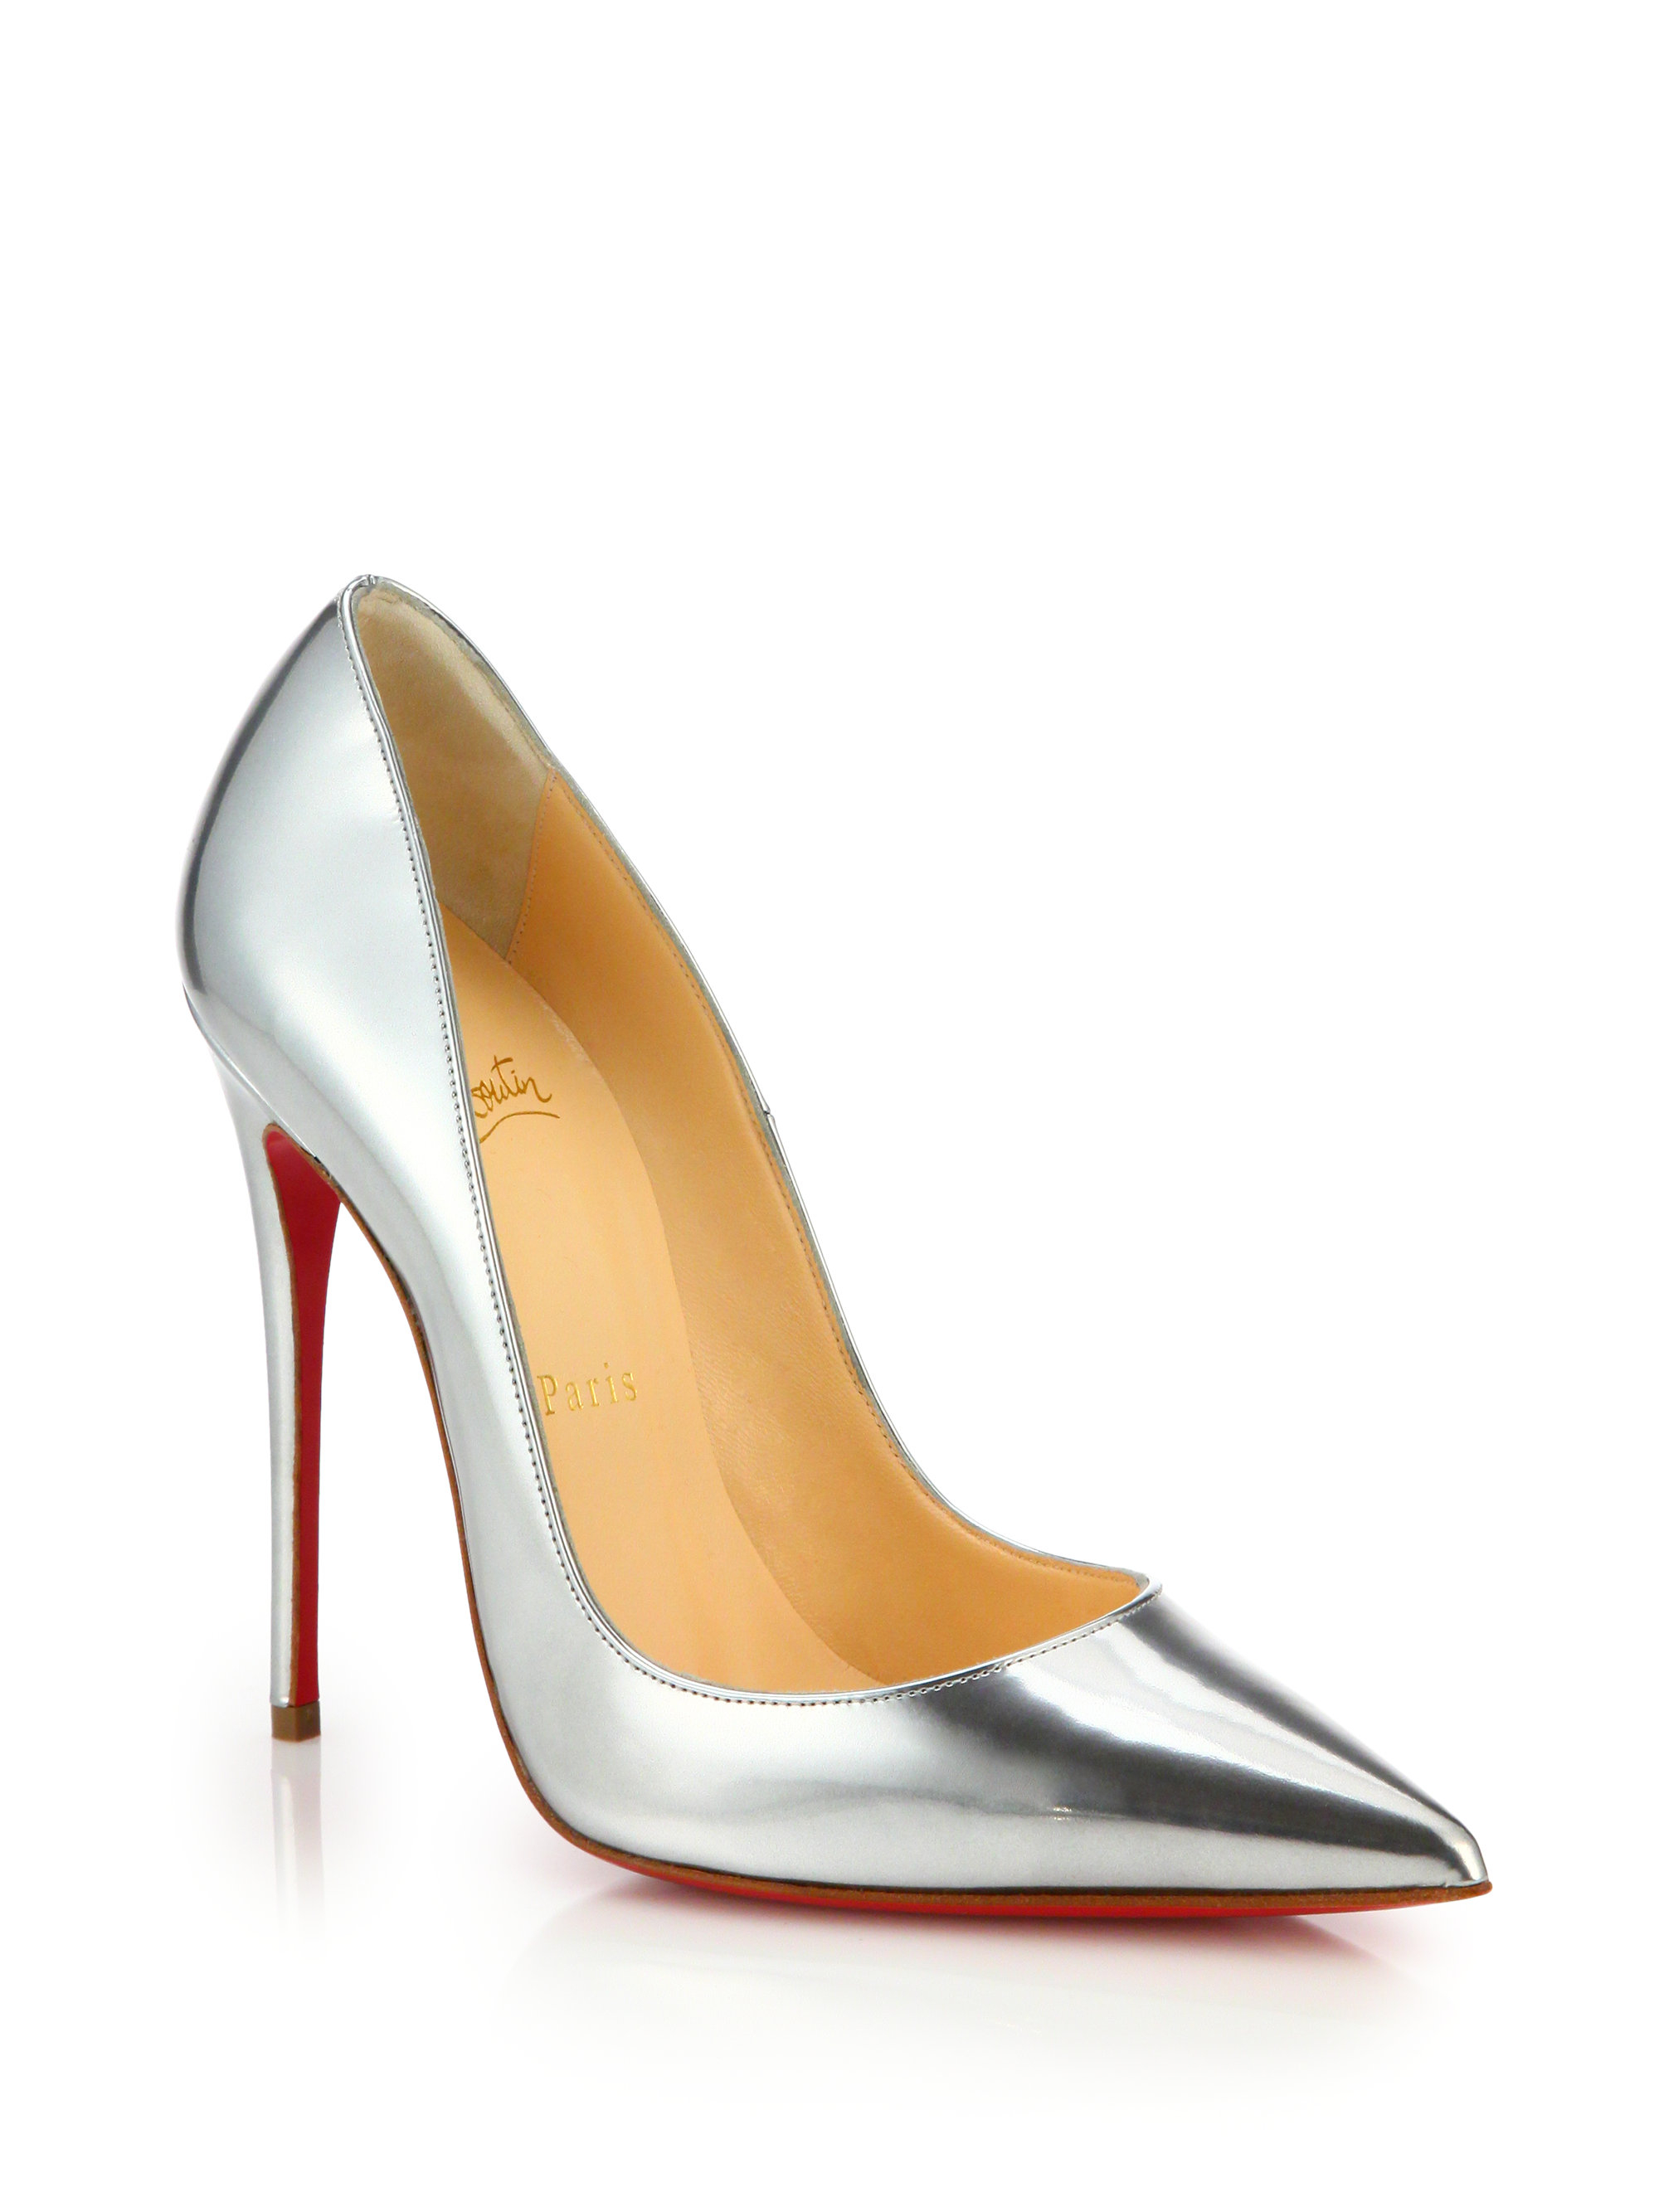 42f0074d8 sweden lyst christian louboutin womens so kate pumps in metallic e621b 48f7d